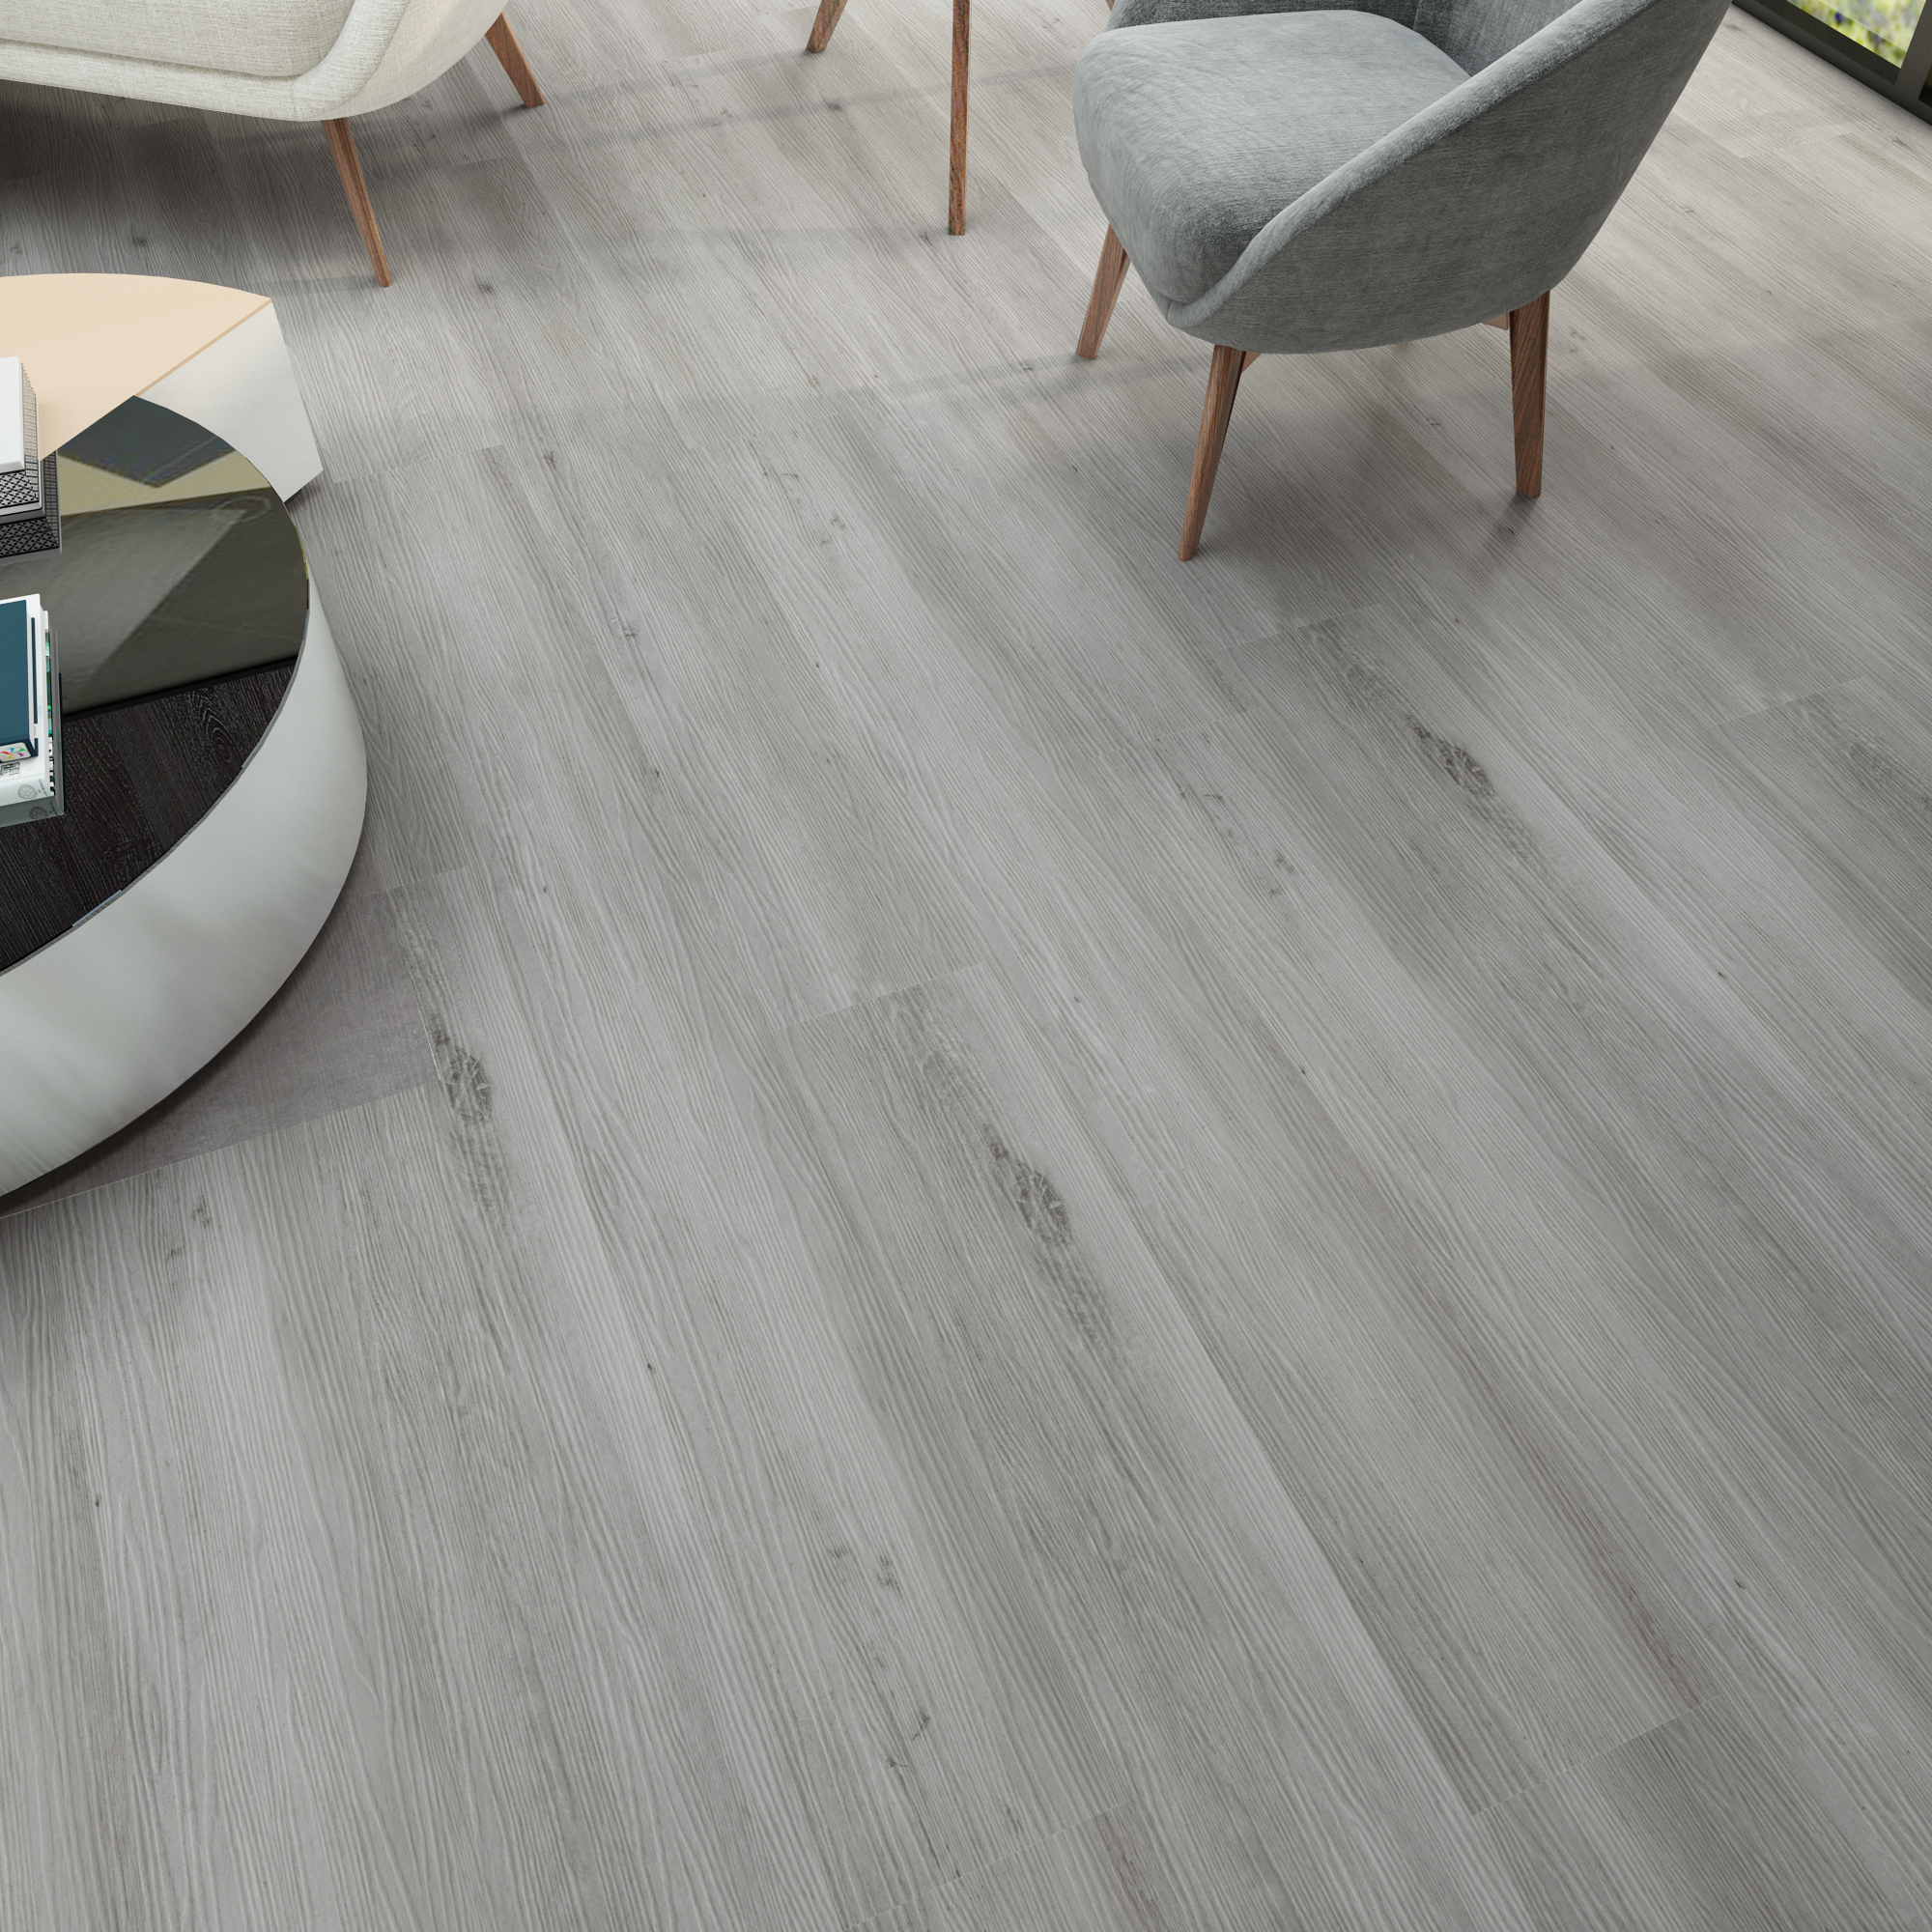 Smoked Pewter-Living Room 3_Site.jpg